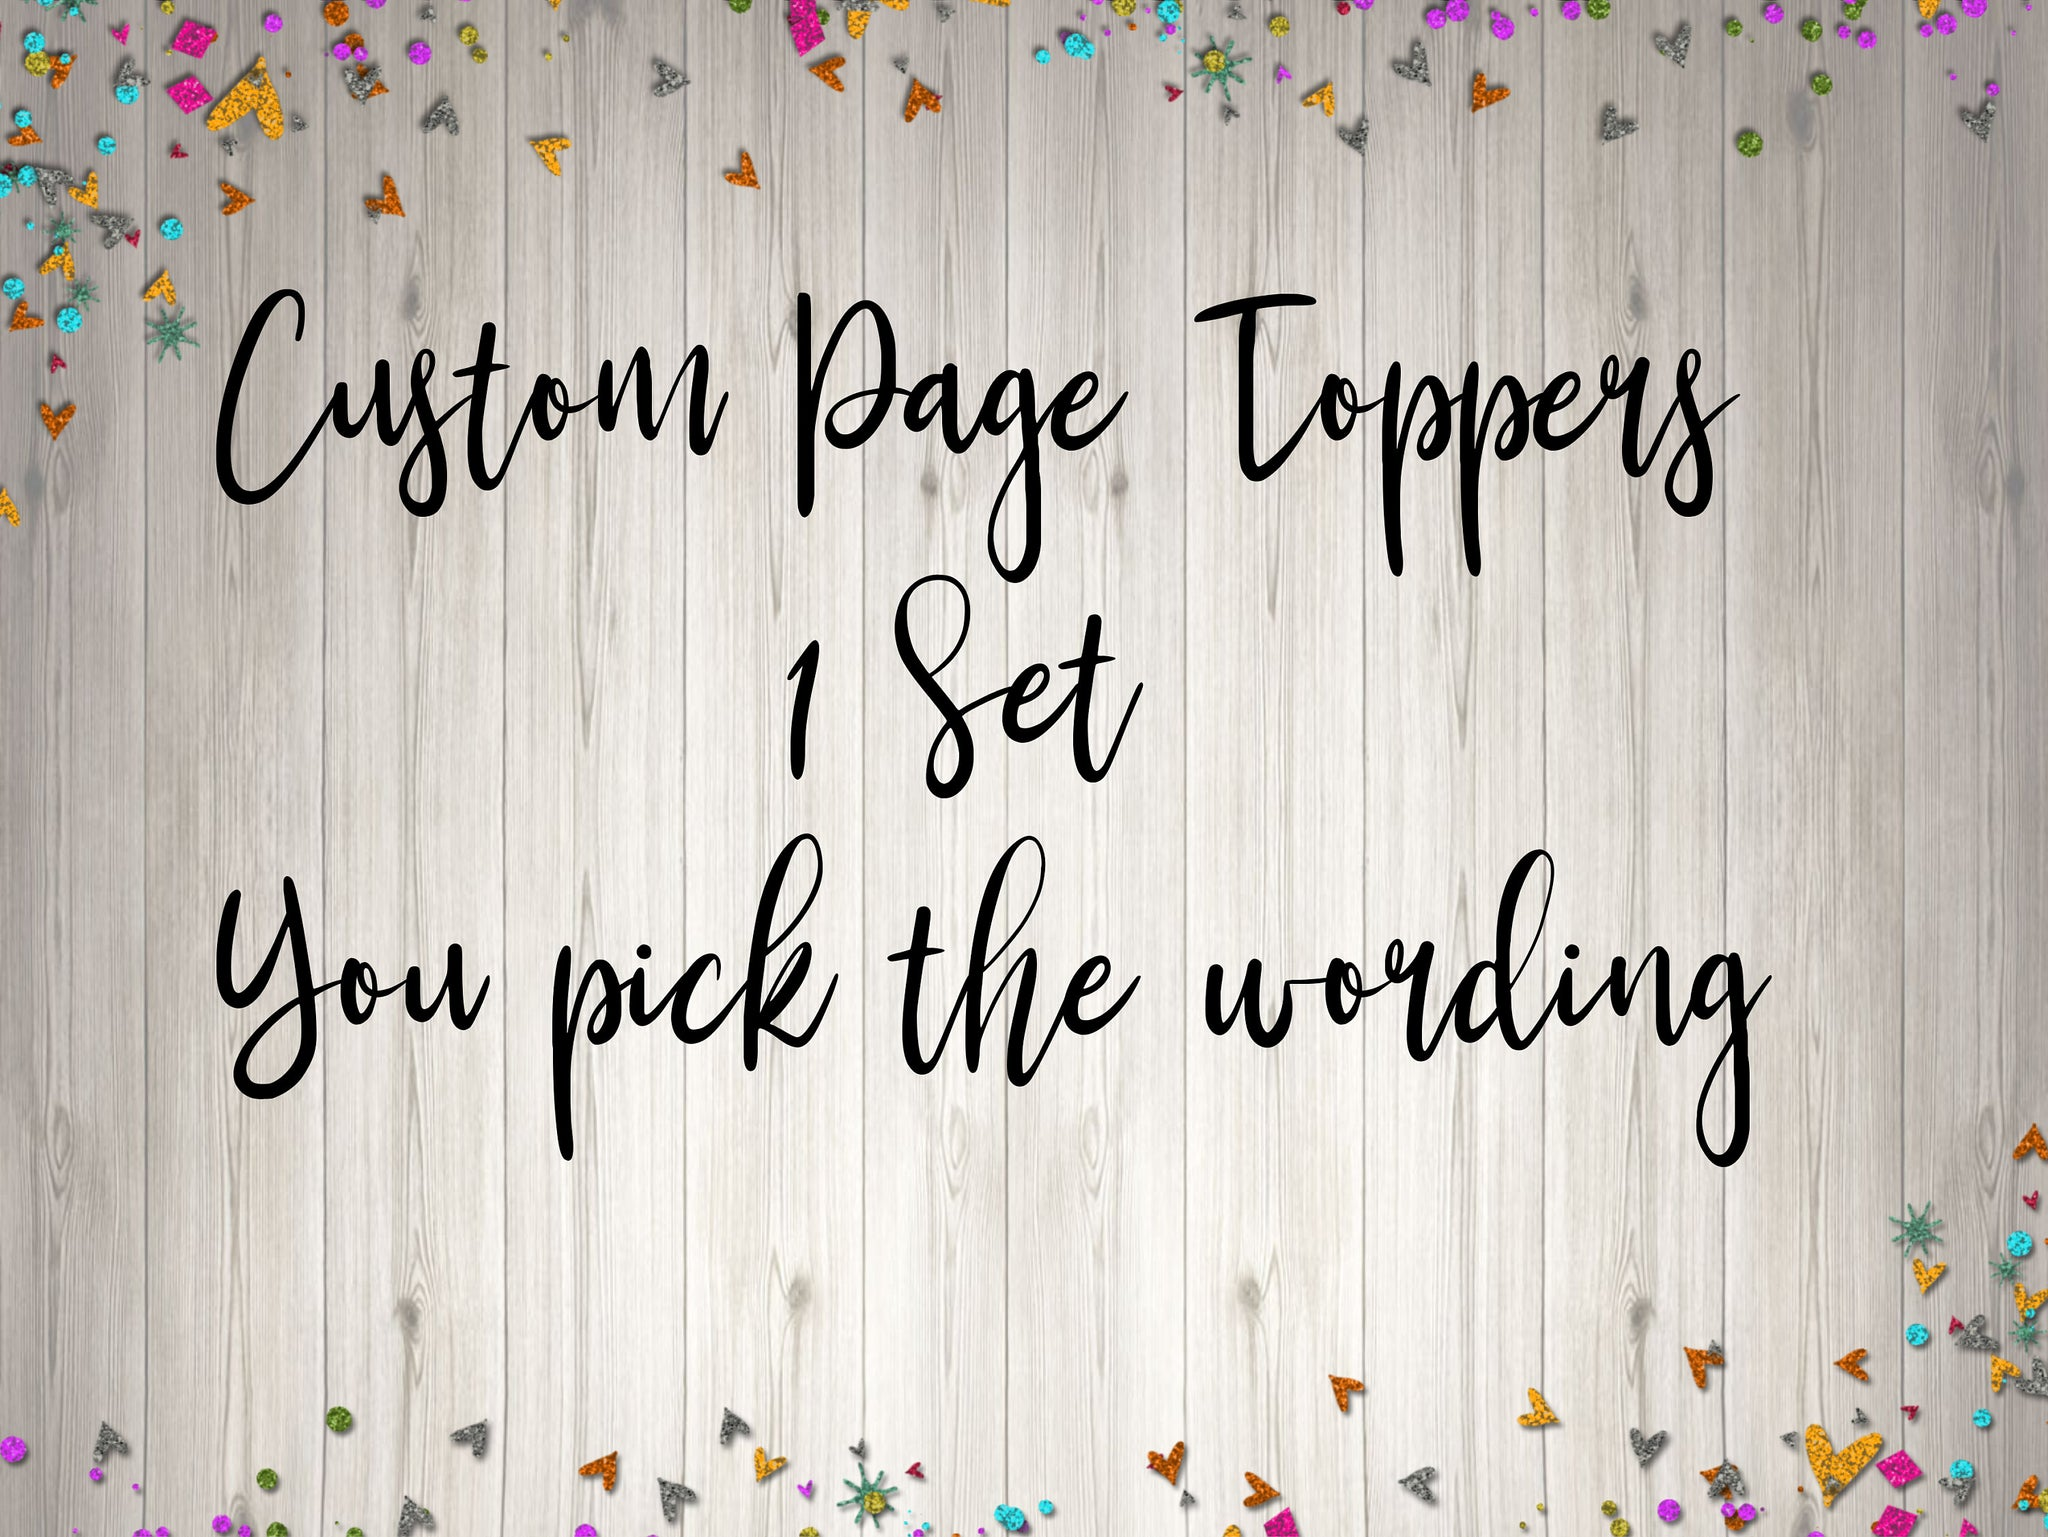 Custom Page Toppers / Word Toppers / Page Marker or Dashboards Toppers / Set of 7 Toppers